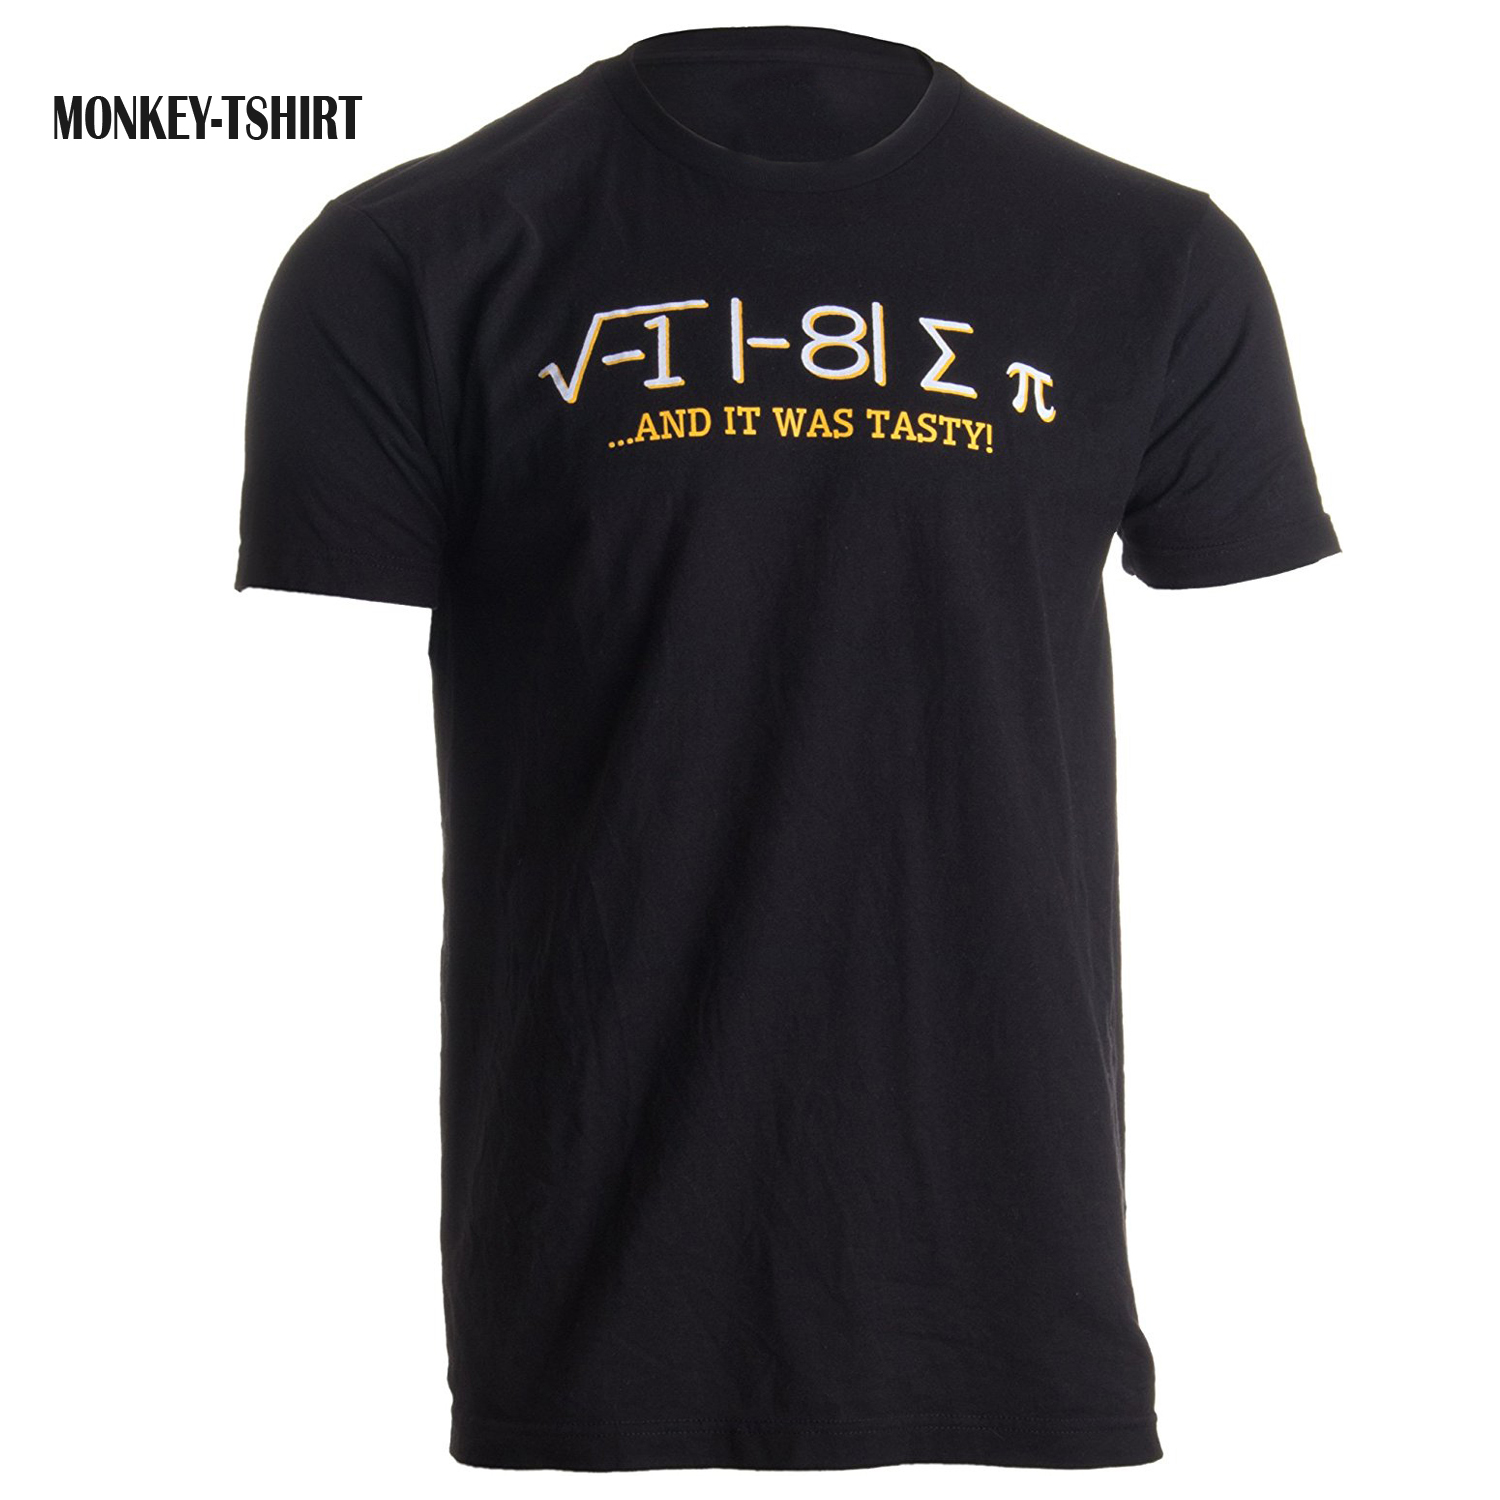 T-shirt Co. I Ate Some Pi, and it was Tasty  Funny Delicious Math Teacher Humor Pun T-shirt